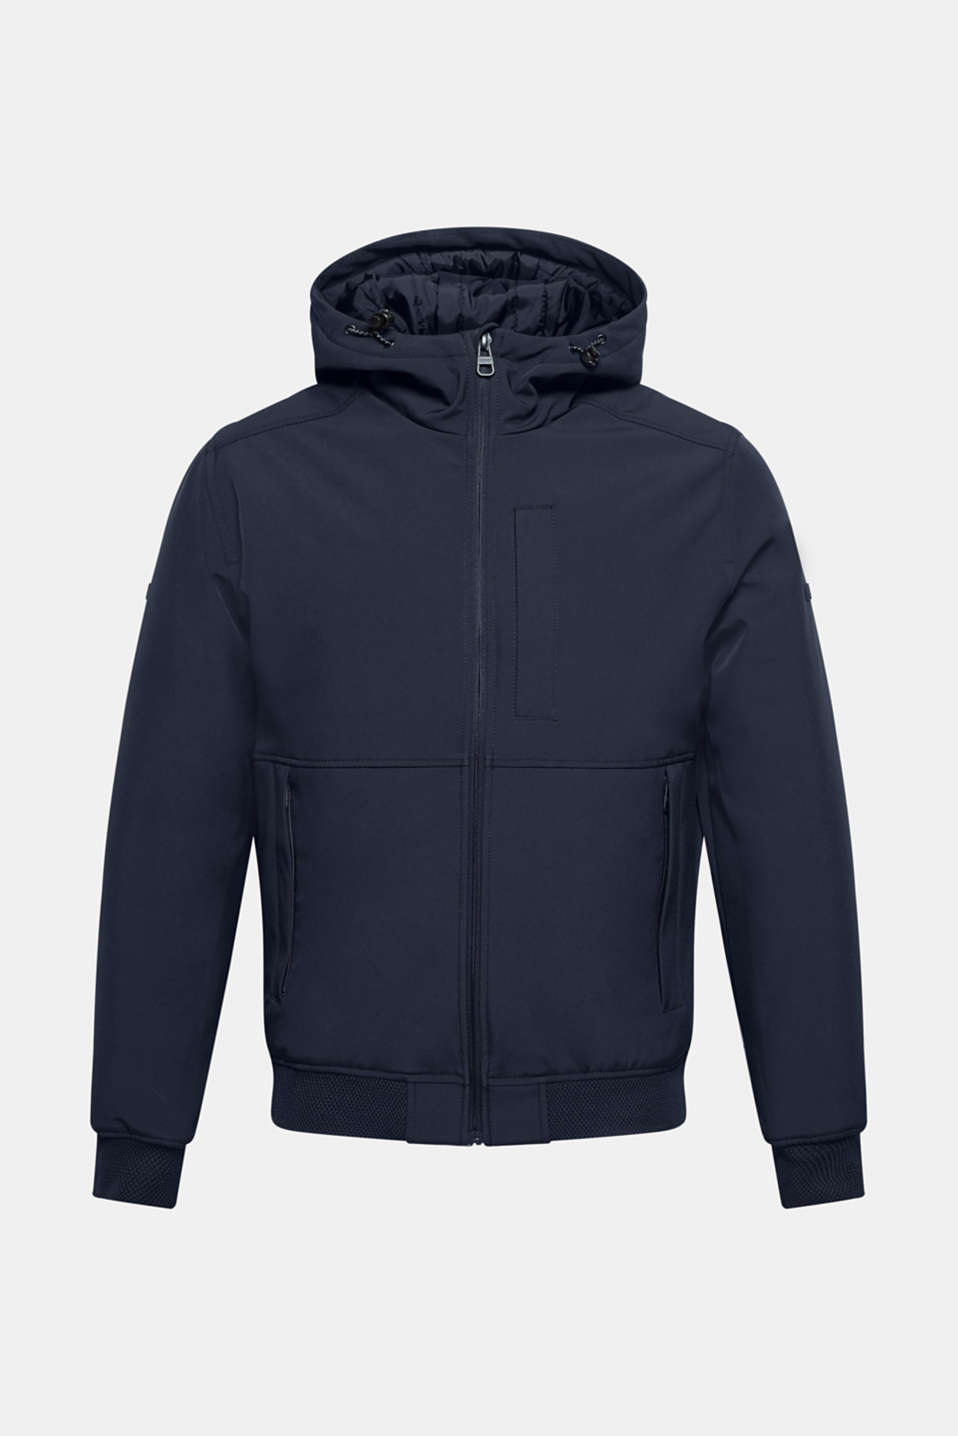 Jackets outdoor woven, NAVY, detail image number 6